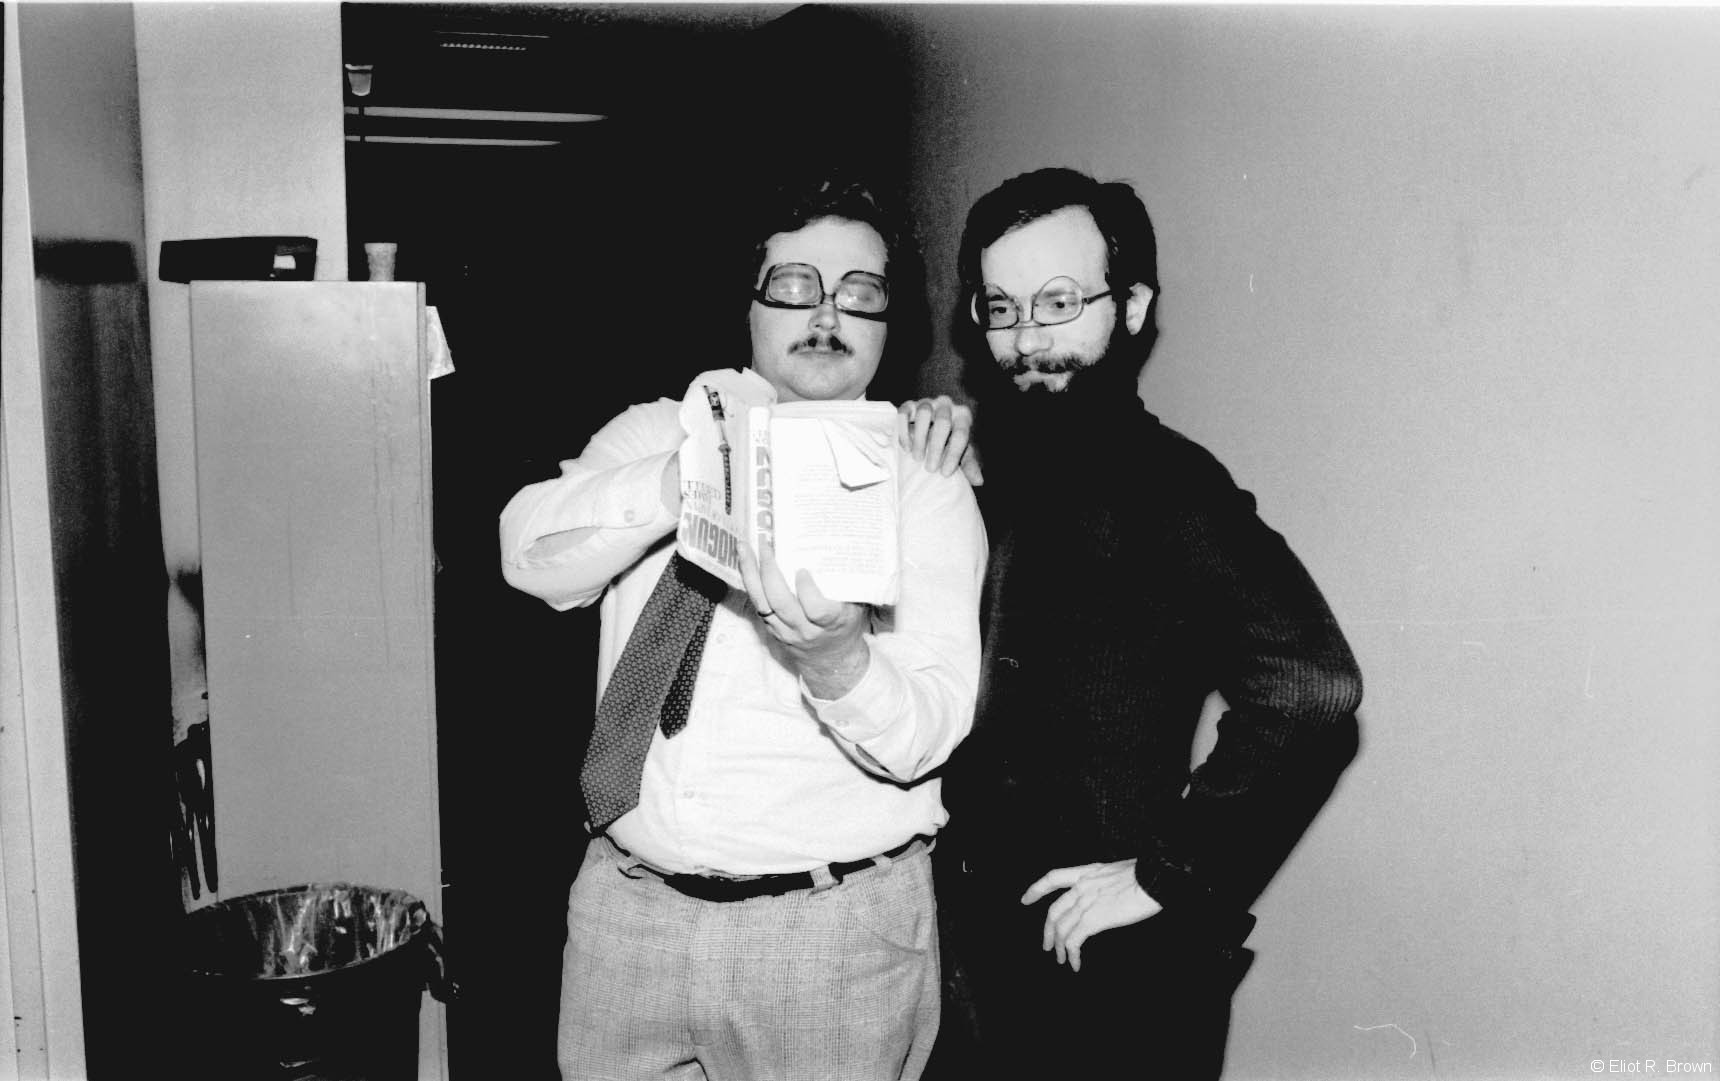 Classic Rick Marschall upside-down-glasses gag, with willing go-along, Mark Gruenwald. Rick was in charge of the b&w magazines and produced Weird World. Rick came from newspapers and is a recognized expert and resource for newspaper strips down the ages. He was also one funny person.